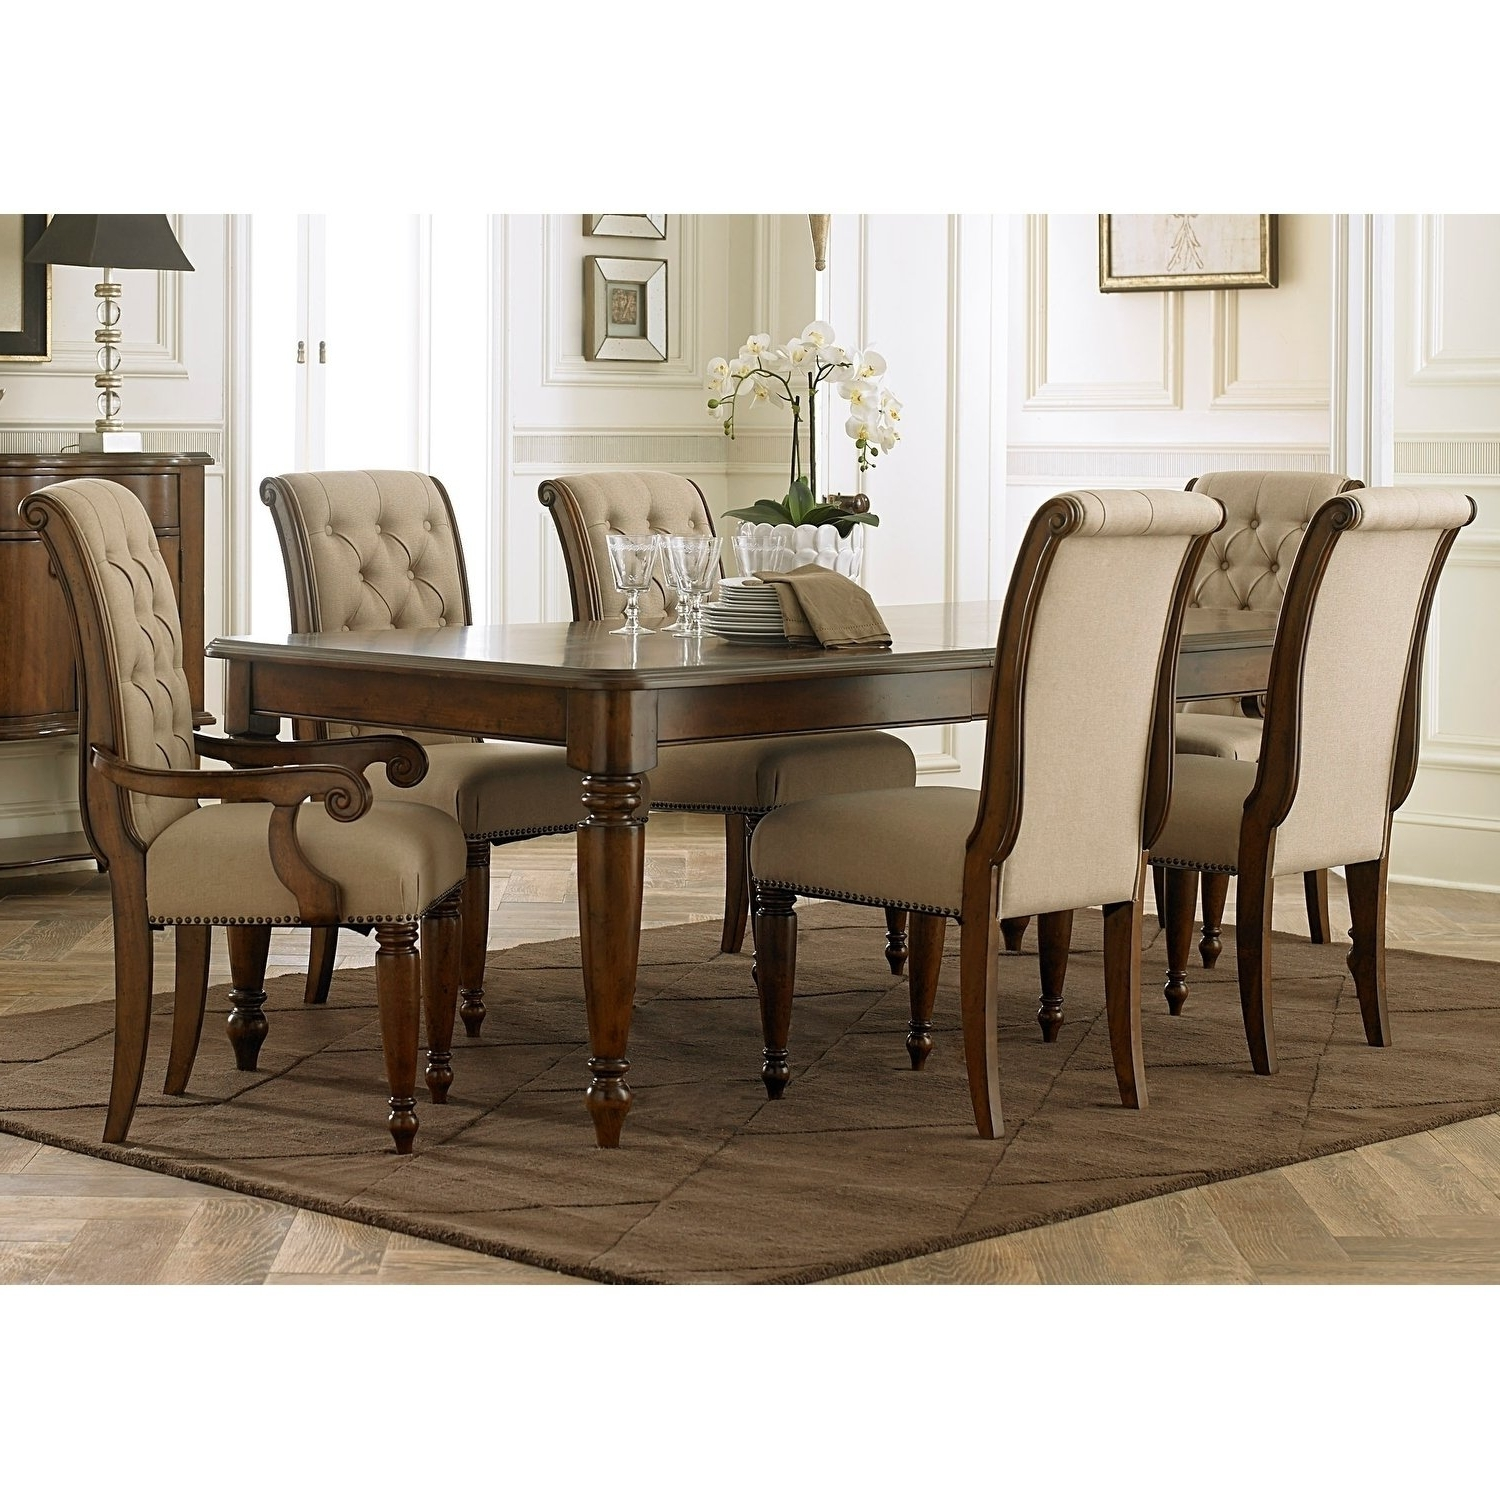 Trendy Shop Cotswold Cinnamon 7 Piece Rectangular Dining Table Set – On Pertaining To Dining Tables Sets (View 21 of 25)